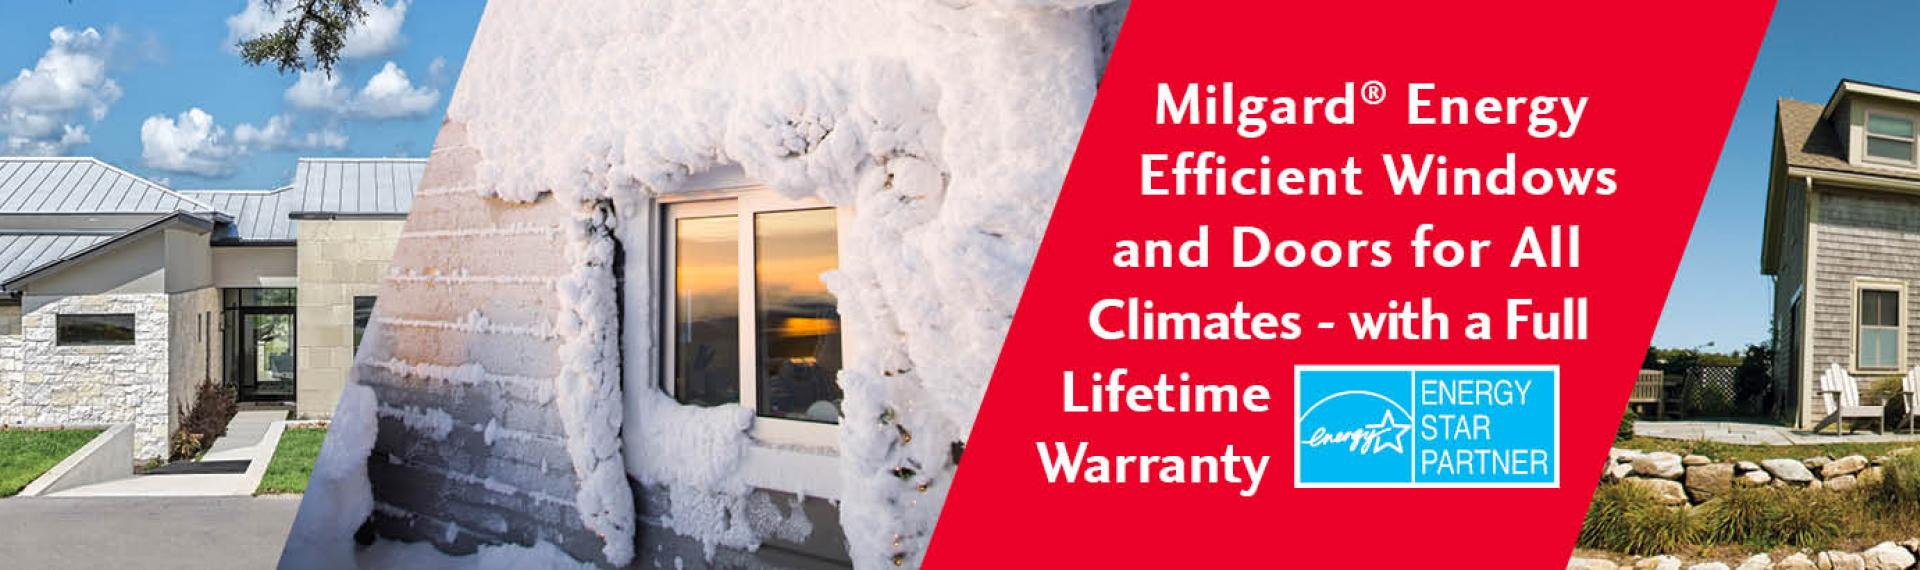 energy star energy efficient windows brochure milgard